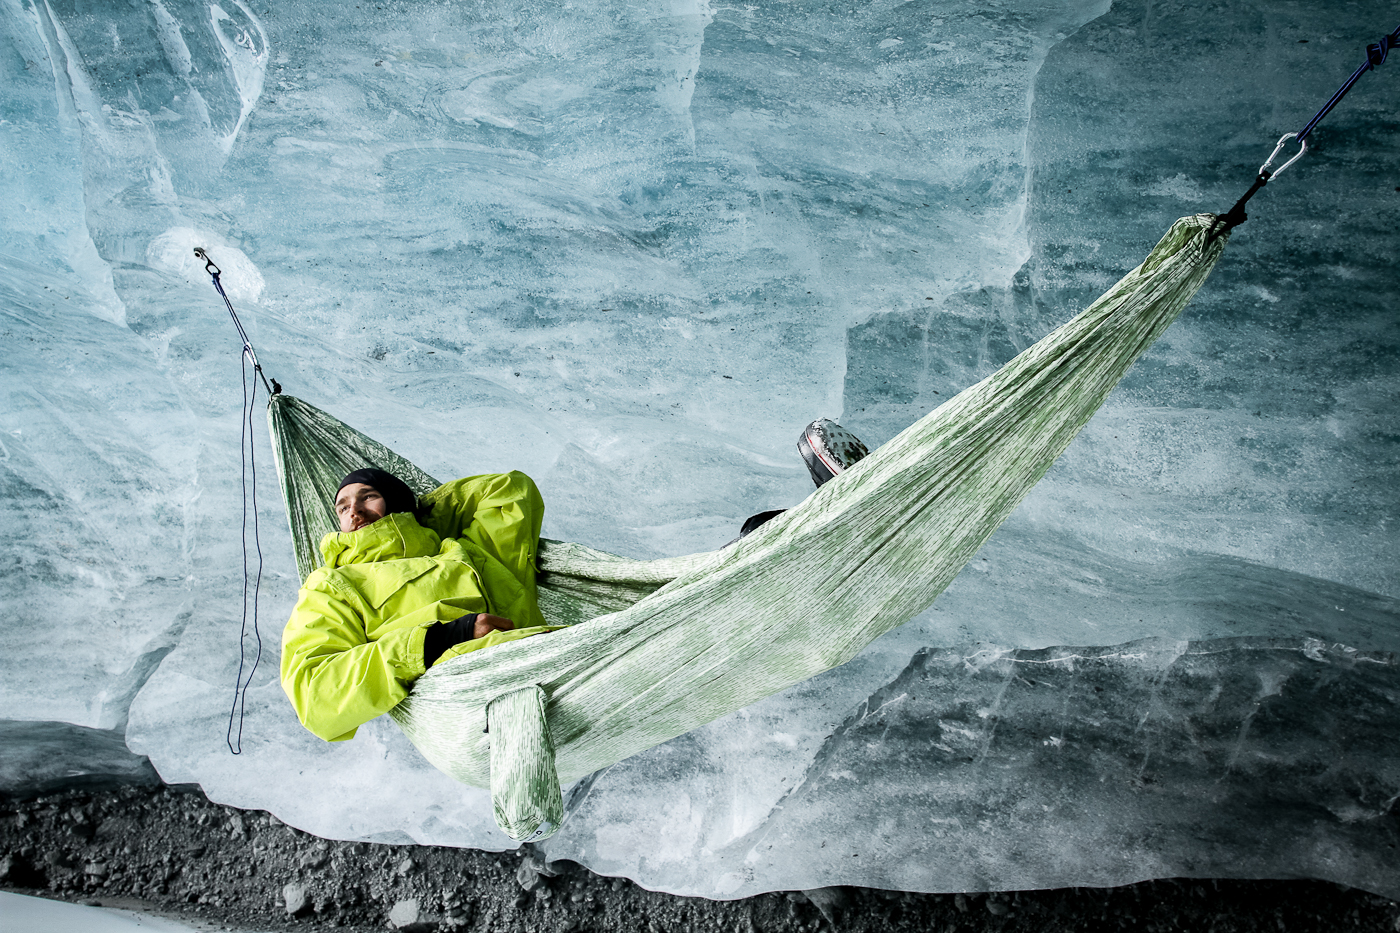 grand trunk winter hammock quick tips  stay warm when winter hammocking  rh   gearjunkie